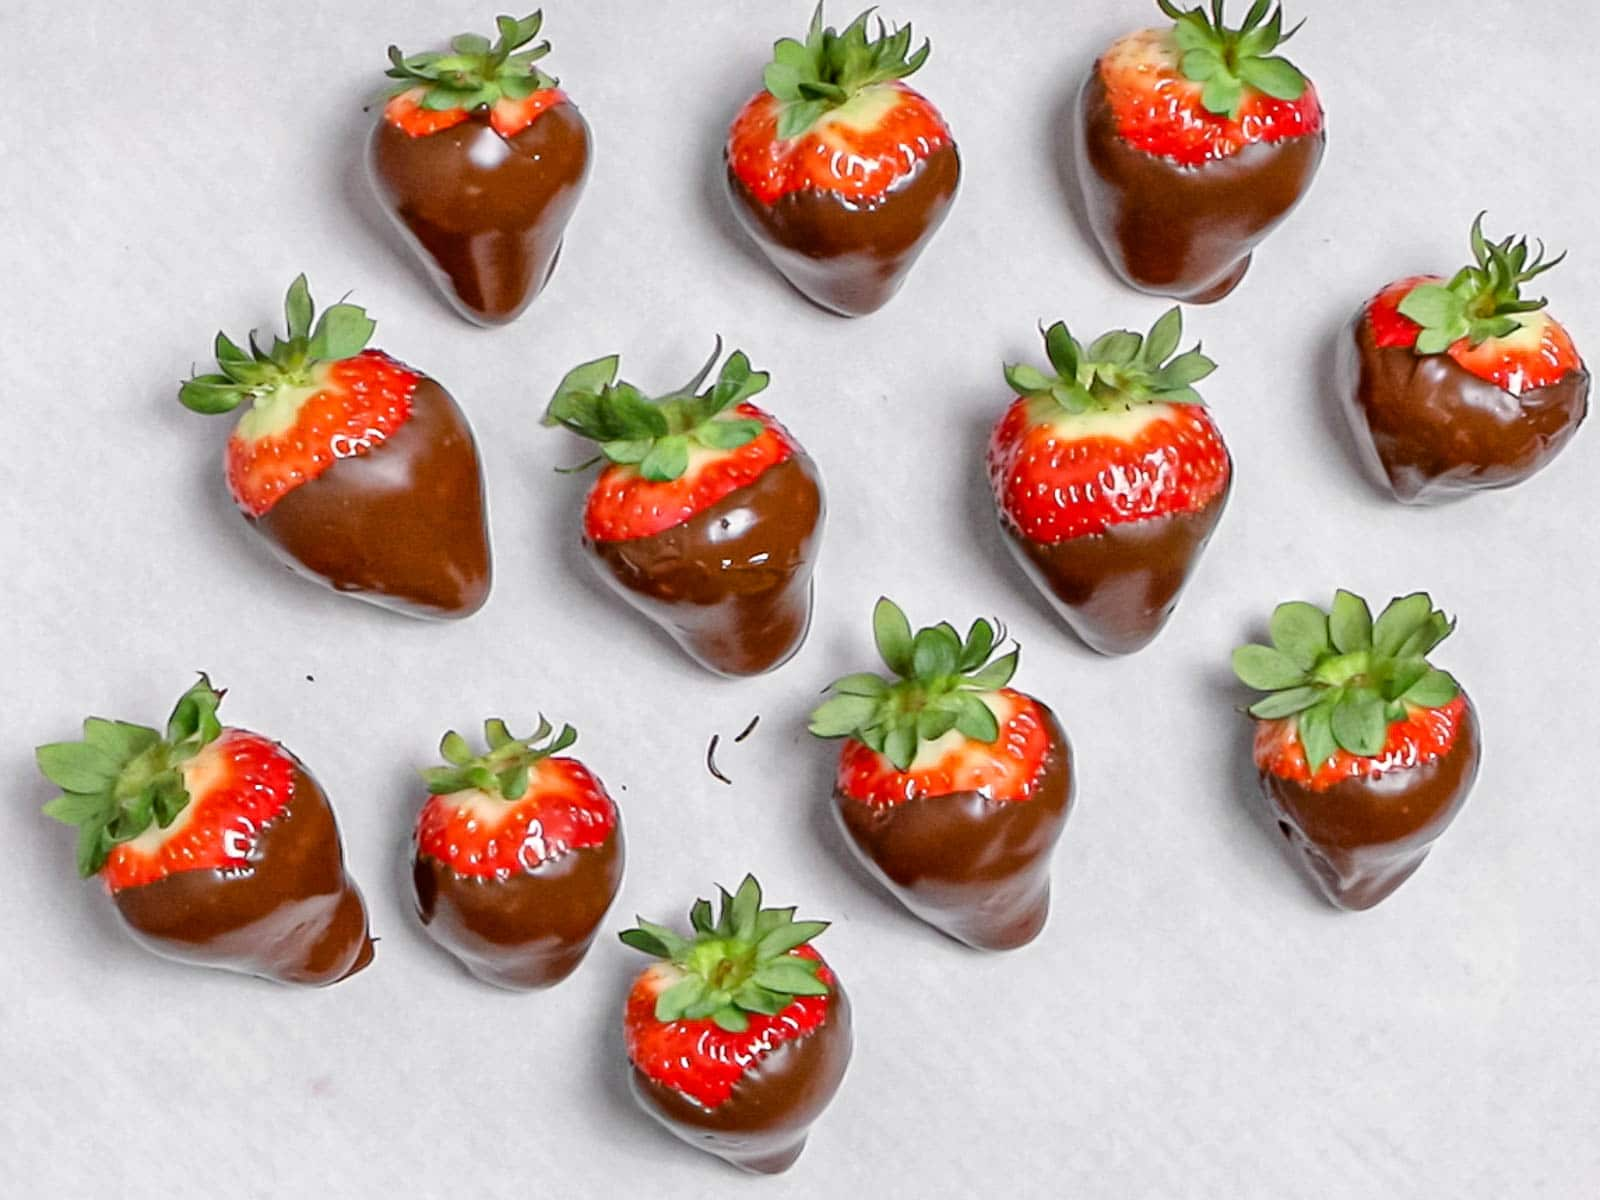 chocolate covered strawberries laying on parchment paper to harden